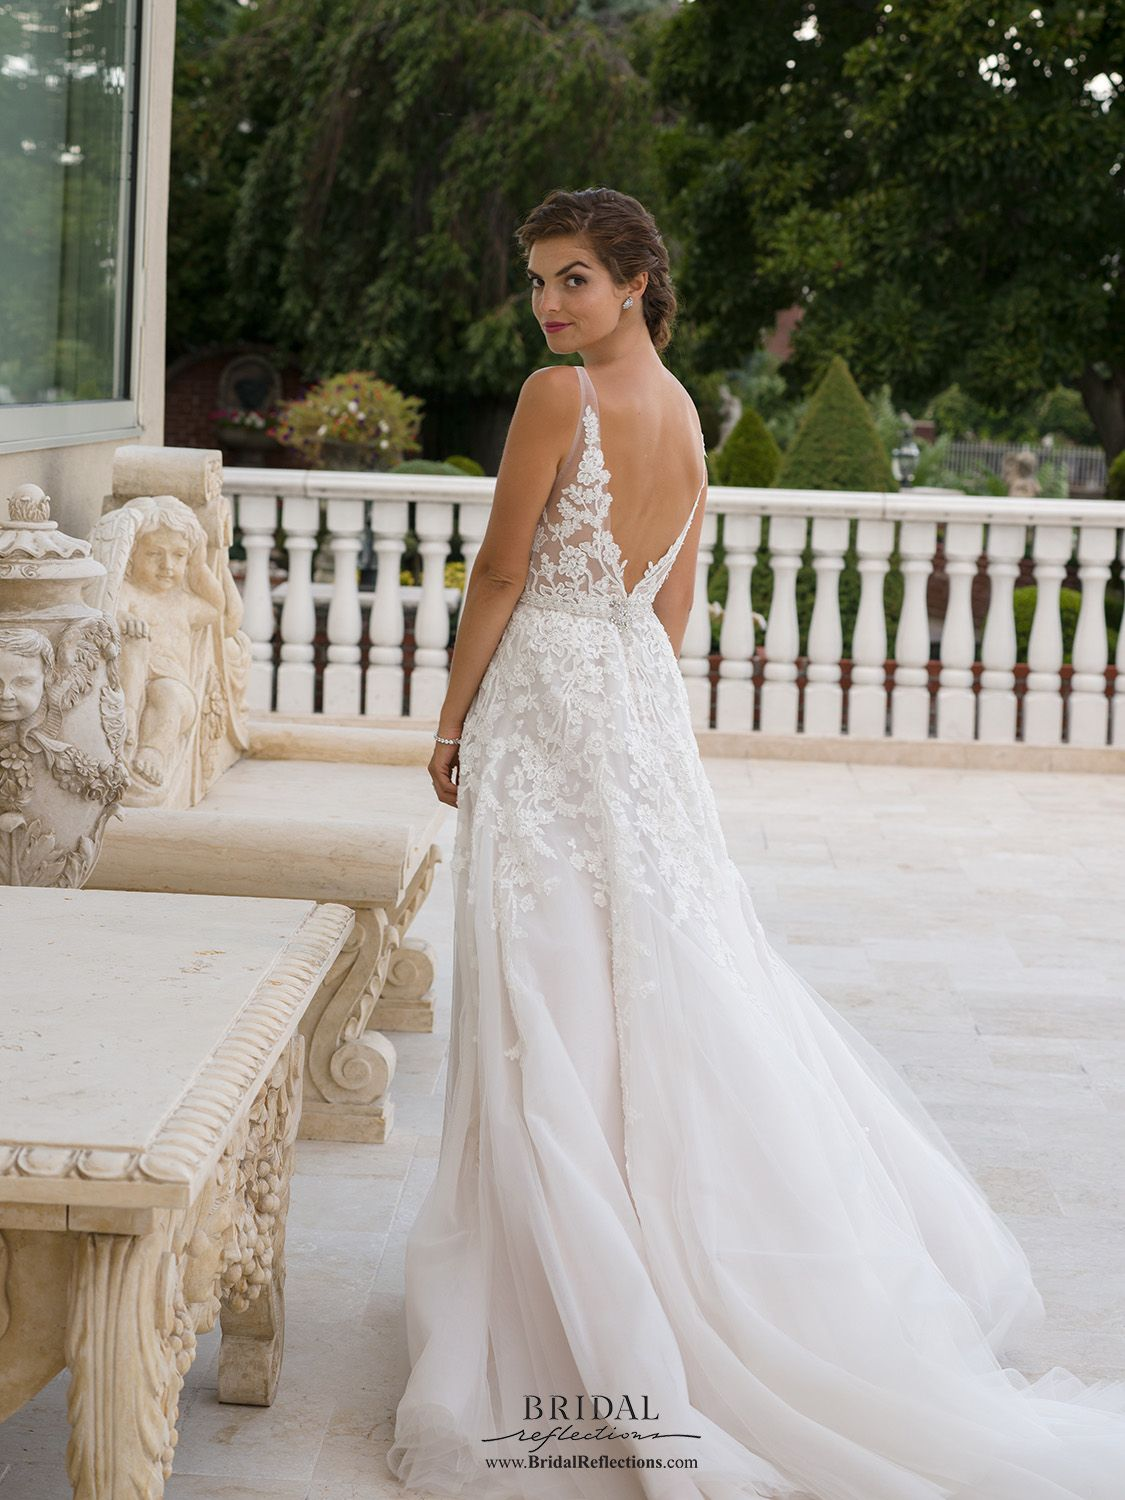 Eve of milady by eve muscio wedding dress collection wedding dress